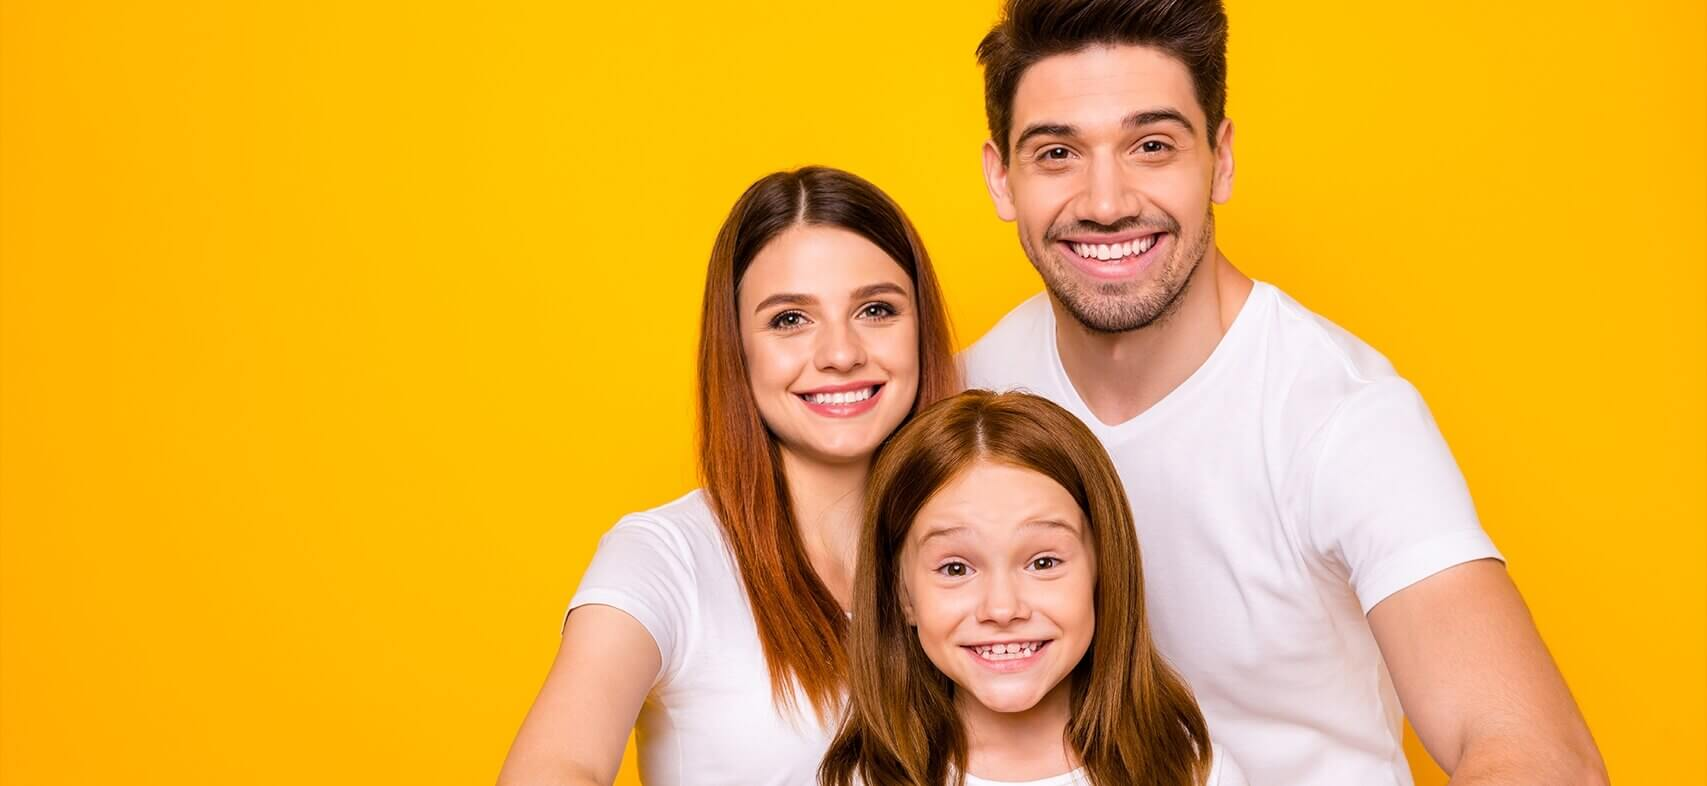 Family of three smiling in front of a yellow background